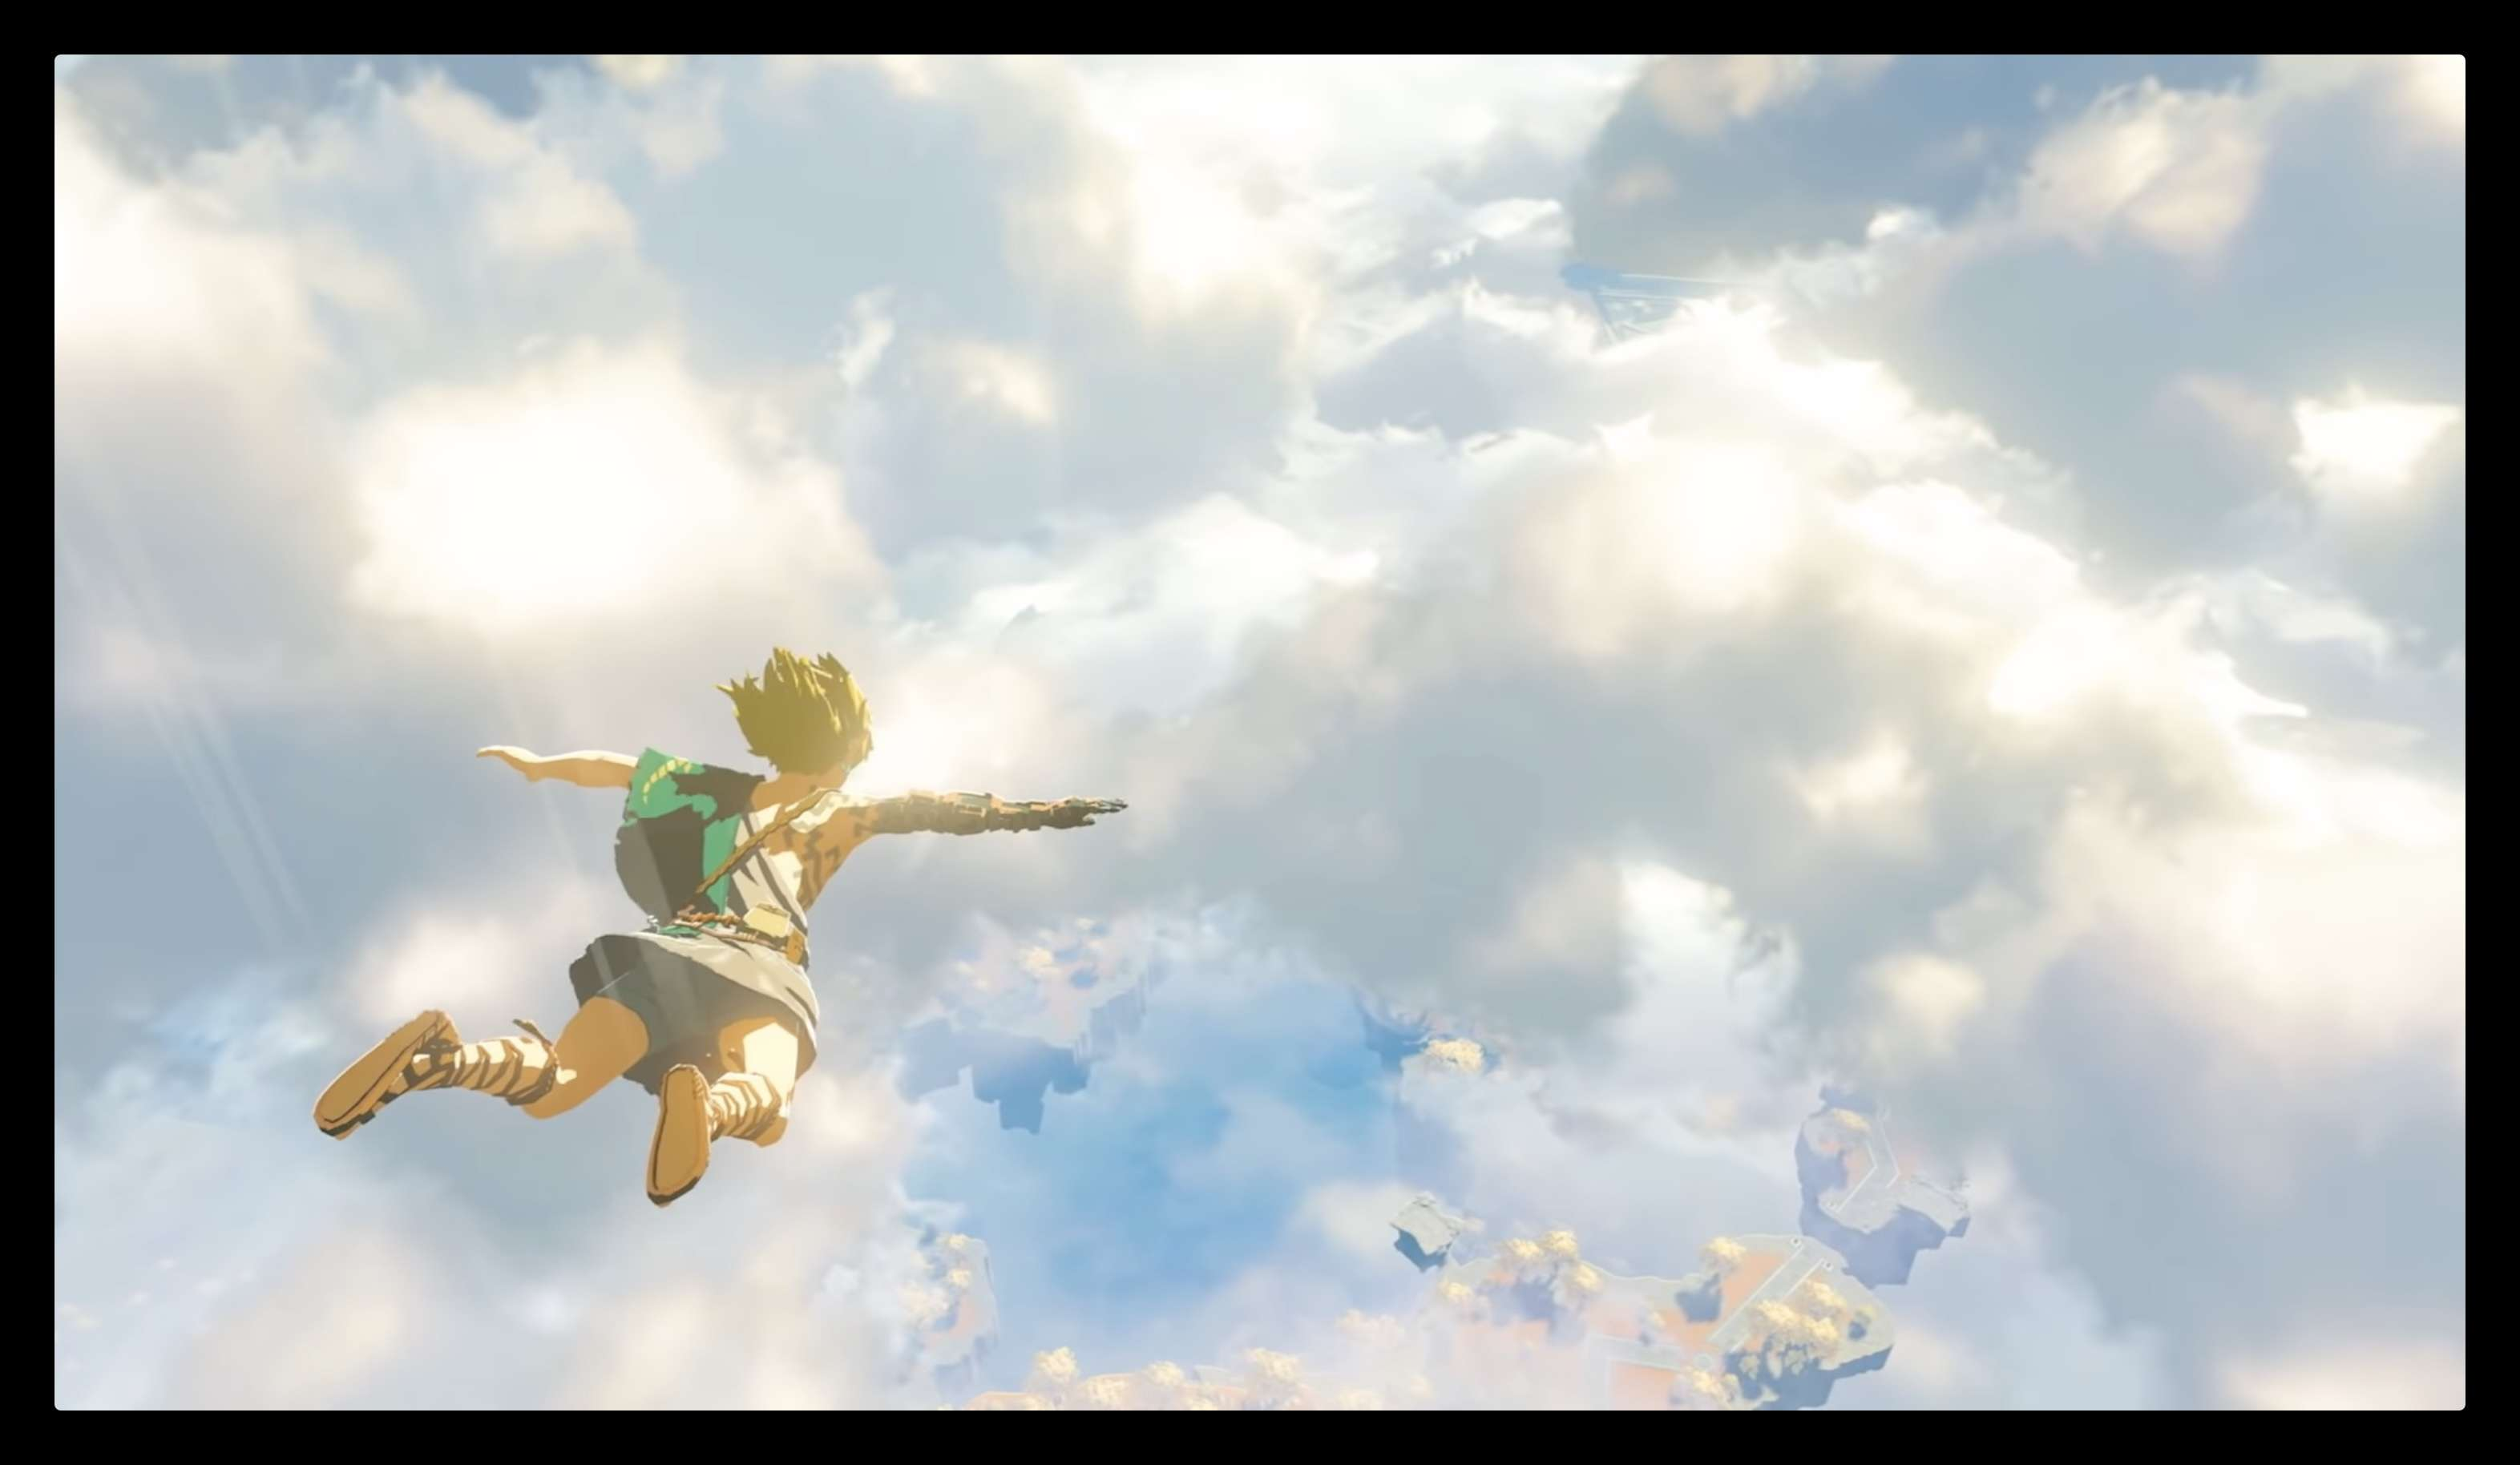 Link skydiving above floating islands in the sky in the Breath of the Wild sequel